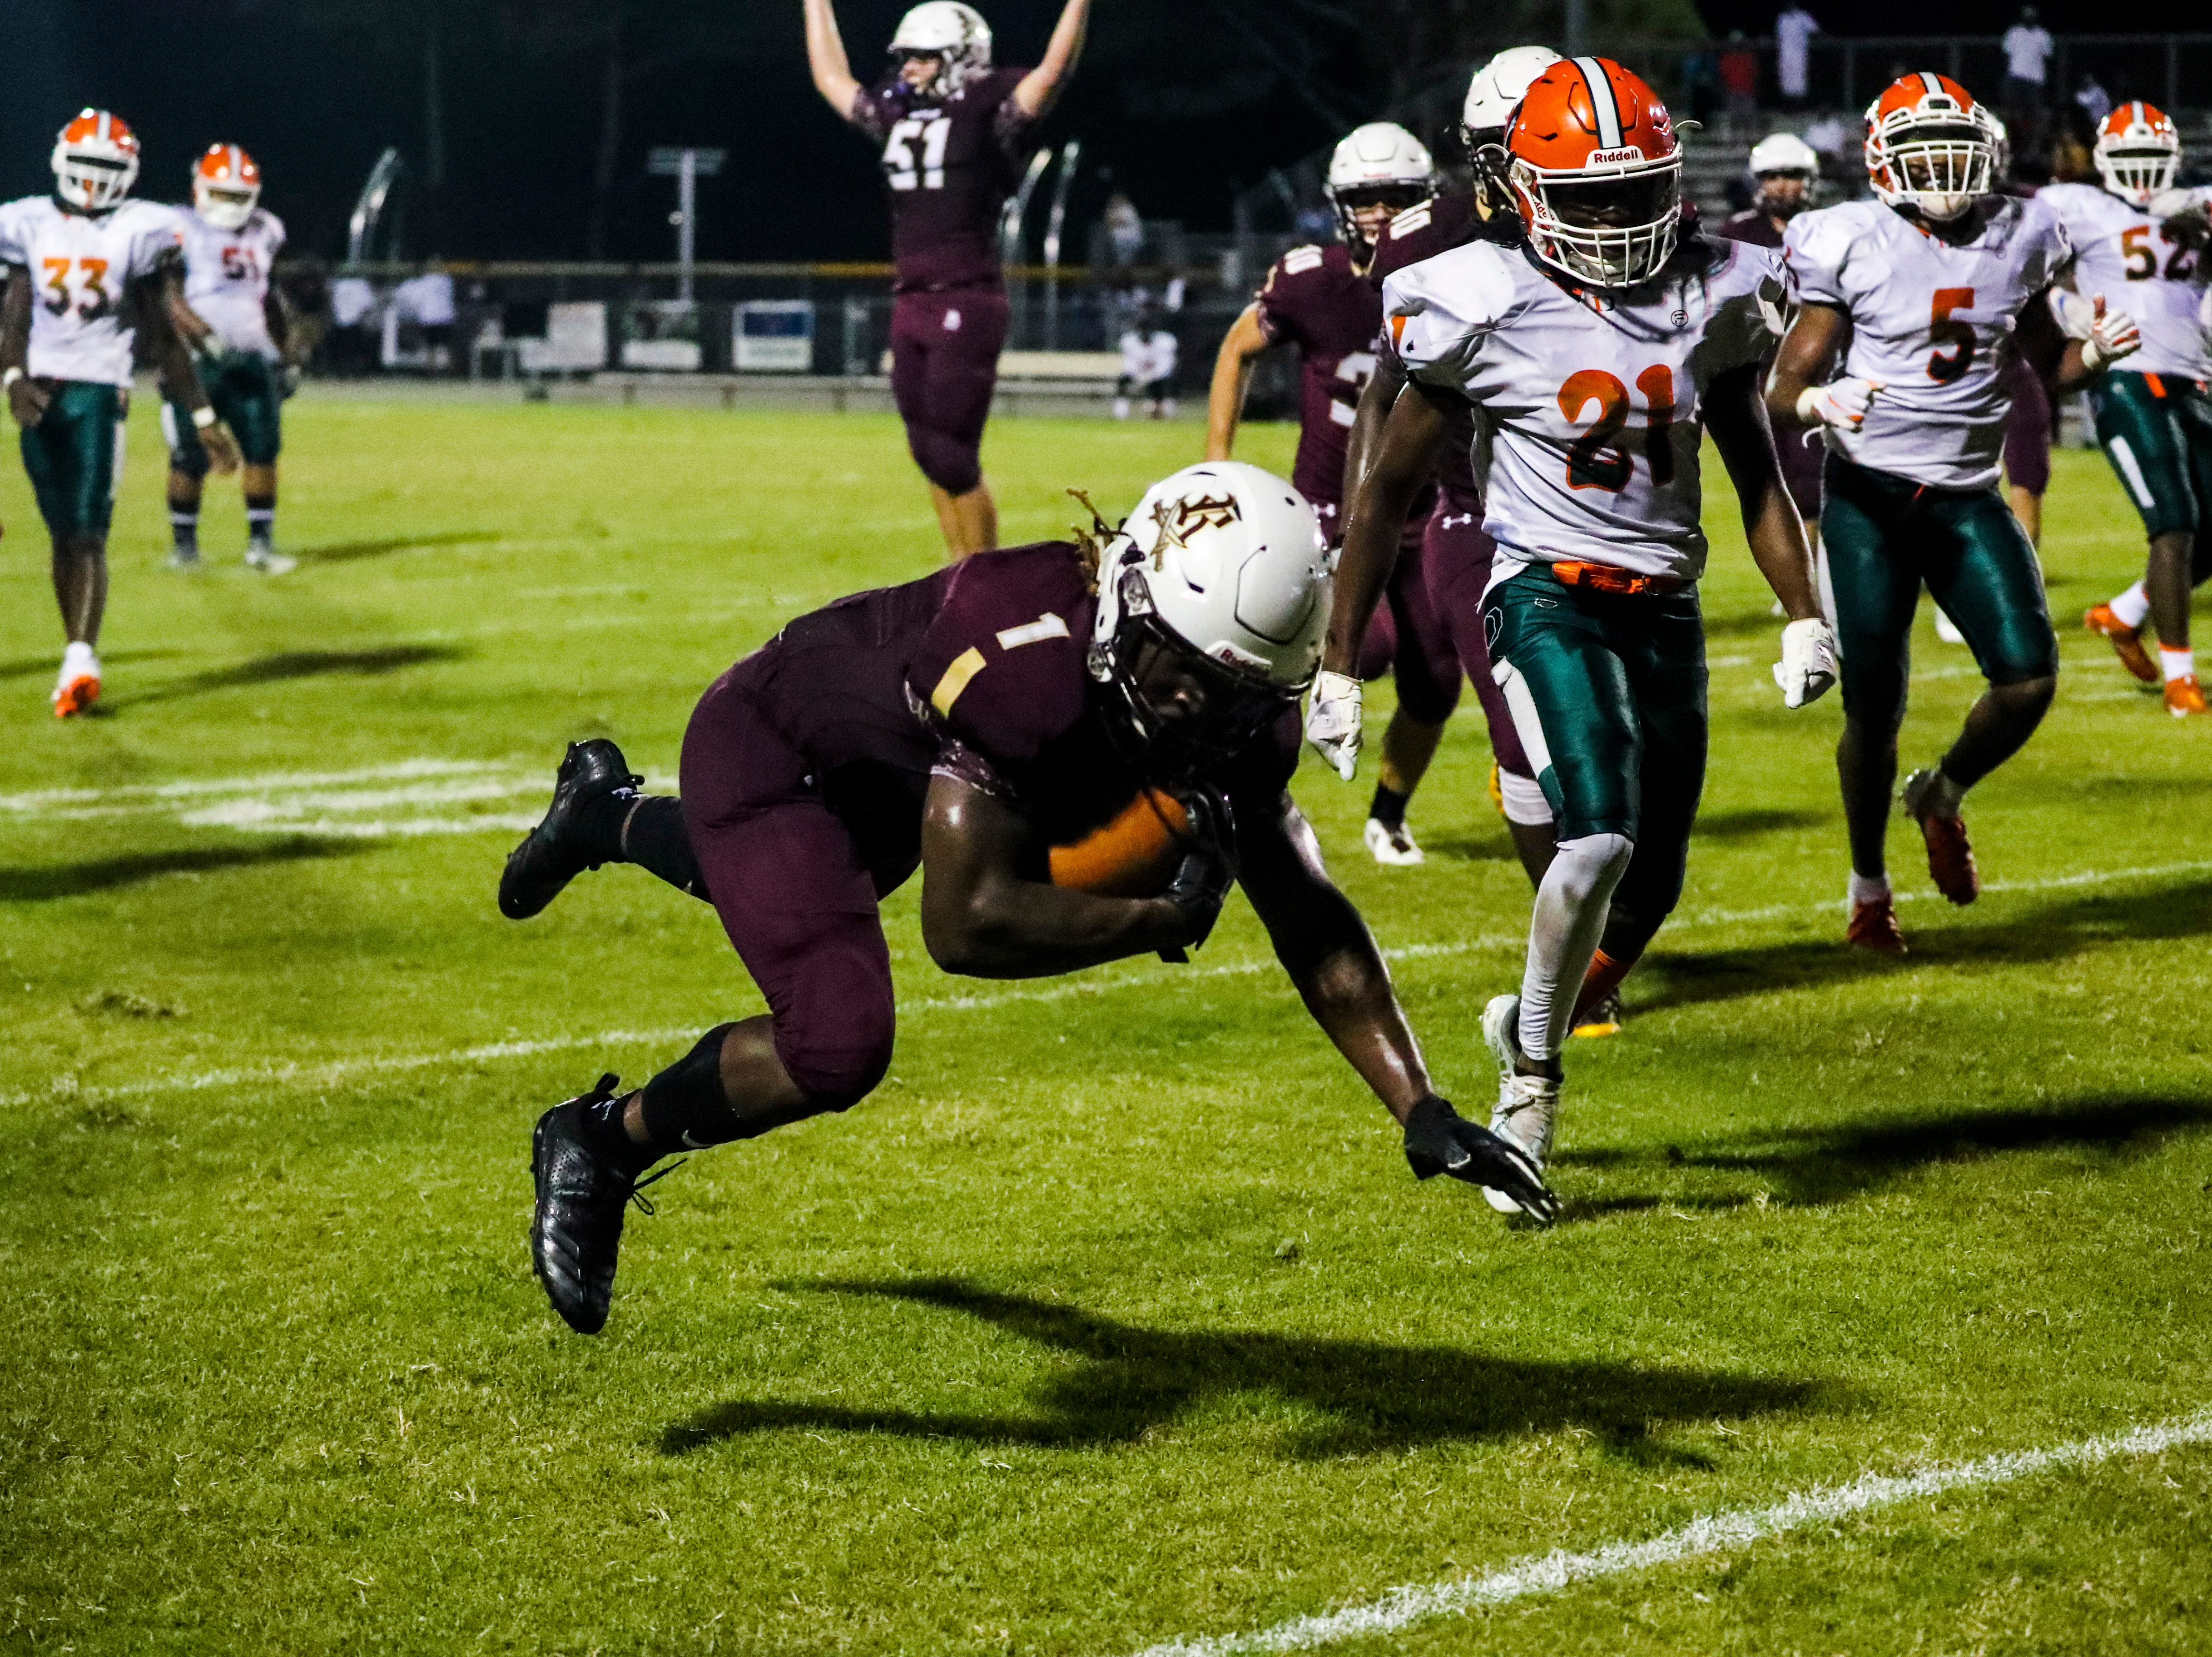 Riverdale's Quantavious Brown goes on to score after this big run into the end zone. Images from the Dunbar at Riverdale high school football game, Friday, September 8th,2018.